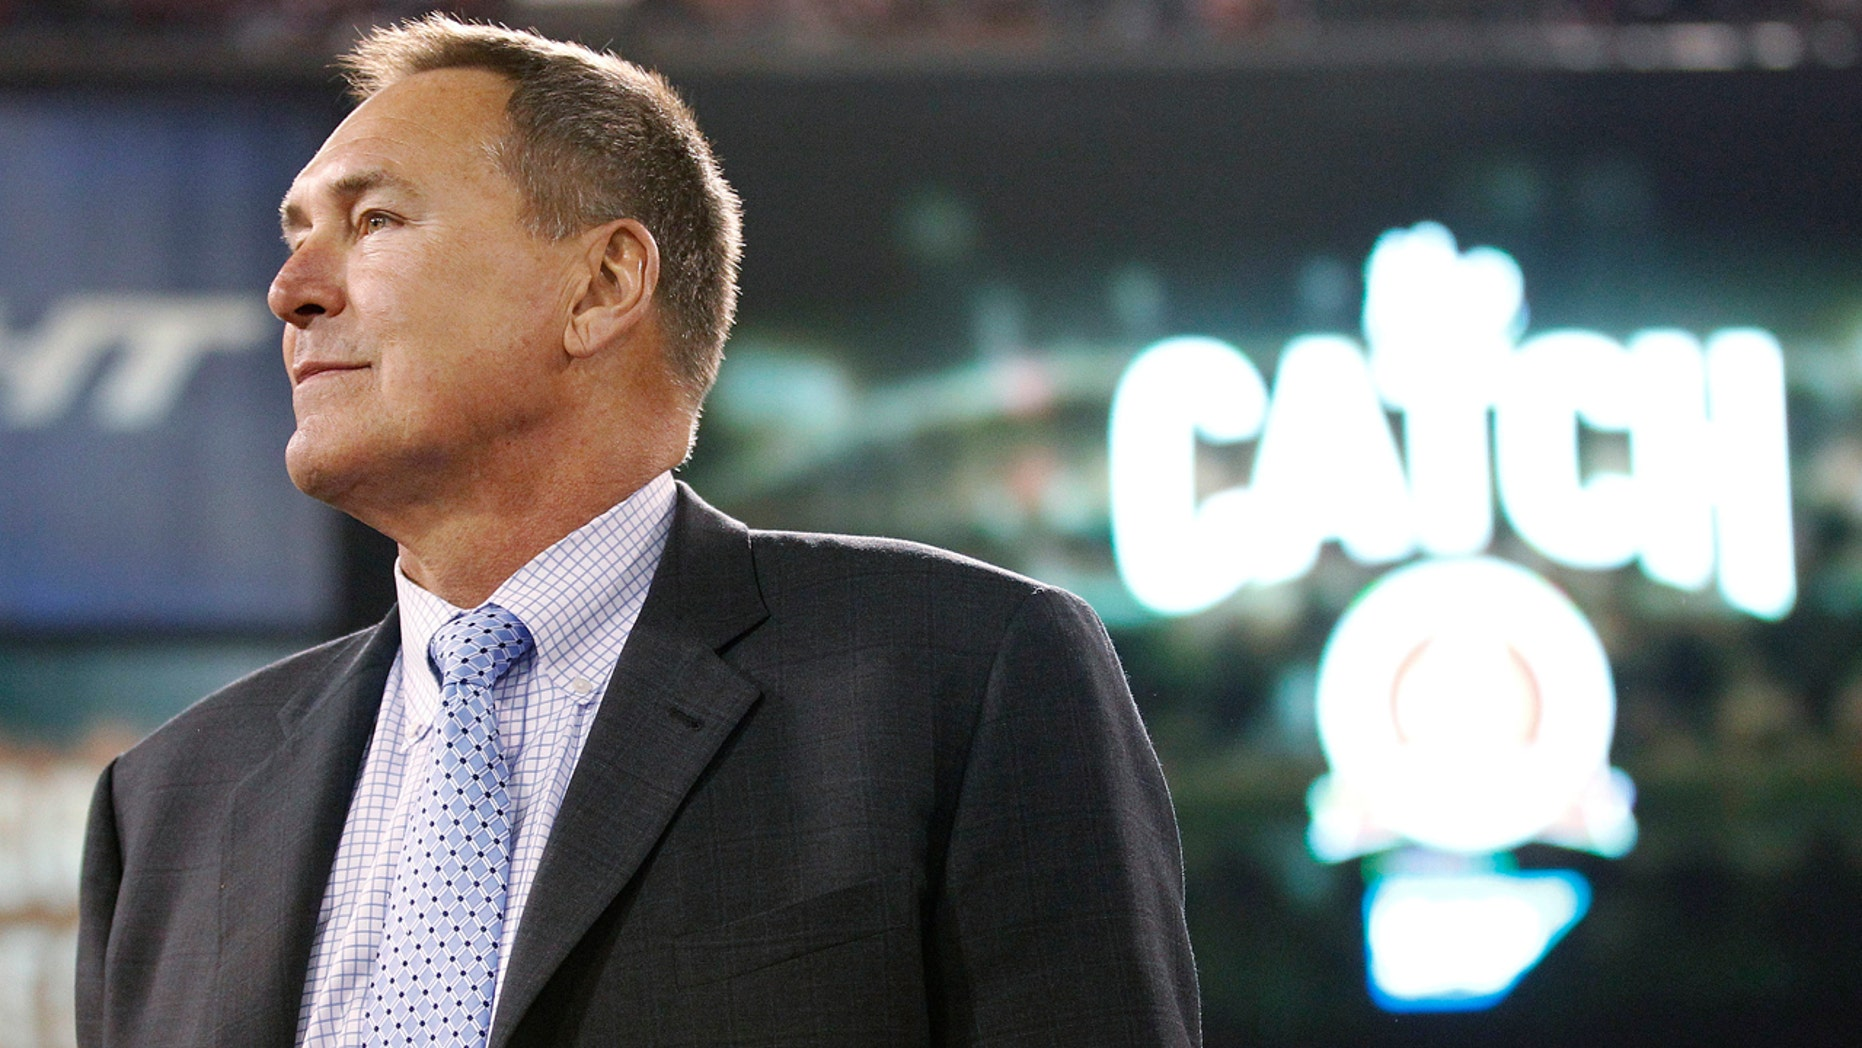 Dec. 23, 2013: In this file photo, former San Francisco 49ers wide receiver Dwight Clark is honored at halftime of an NFL football game between the 49ers and the Atlanta Falcons in San Francisco.